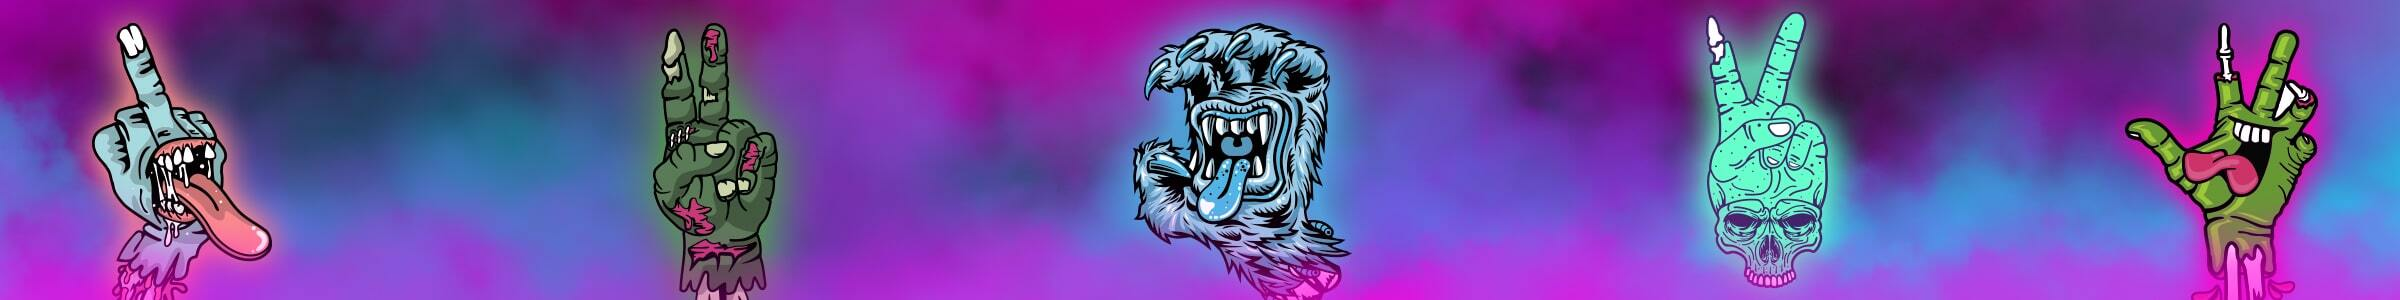 Category_Teaser_Header_Monster_2400x300